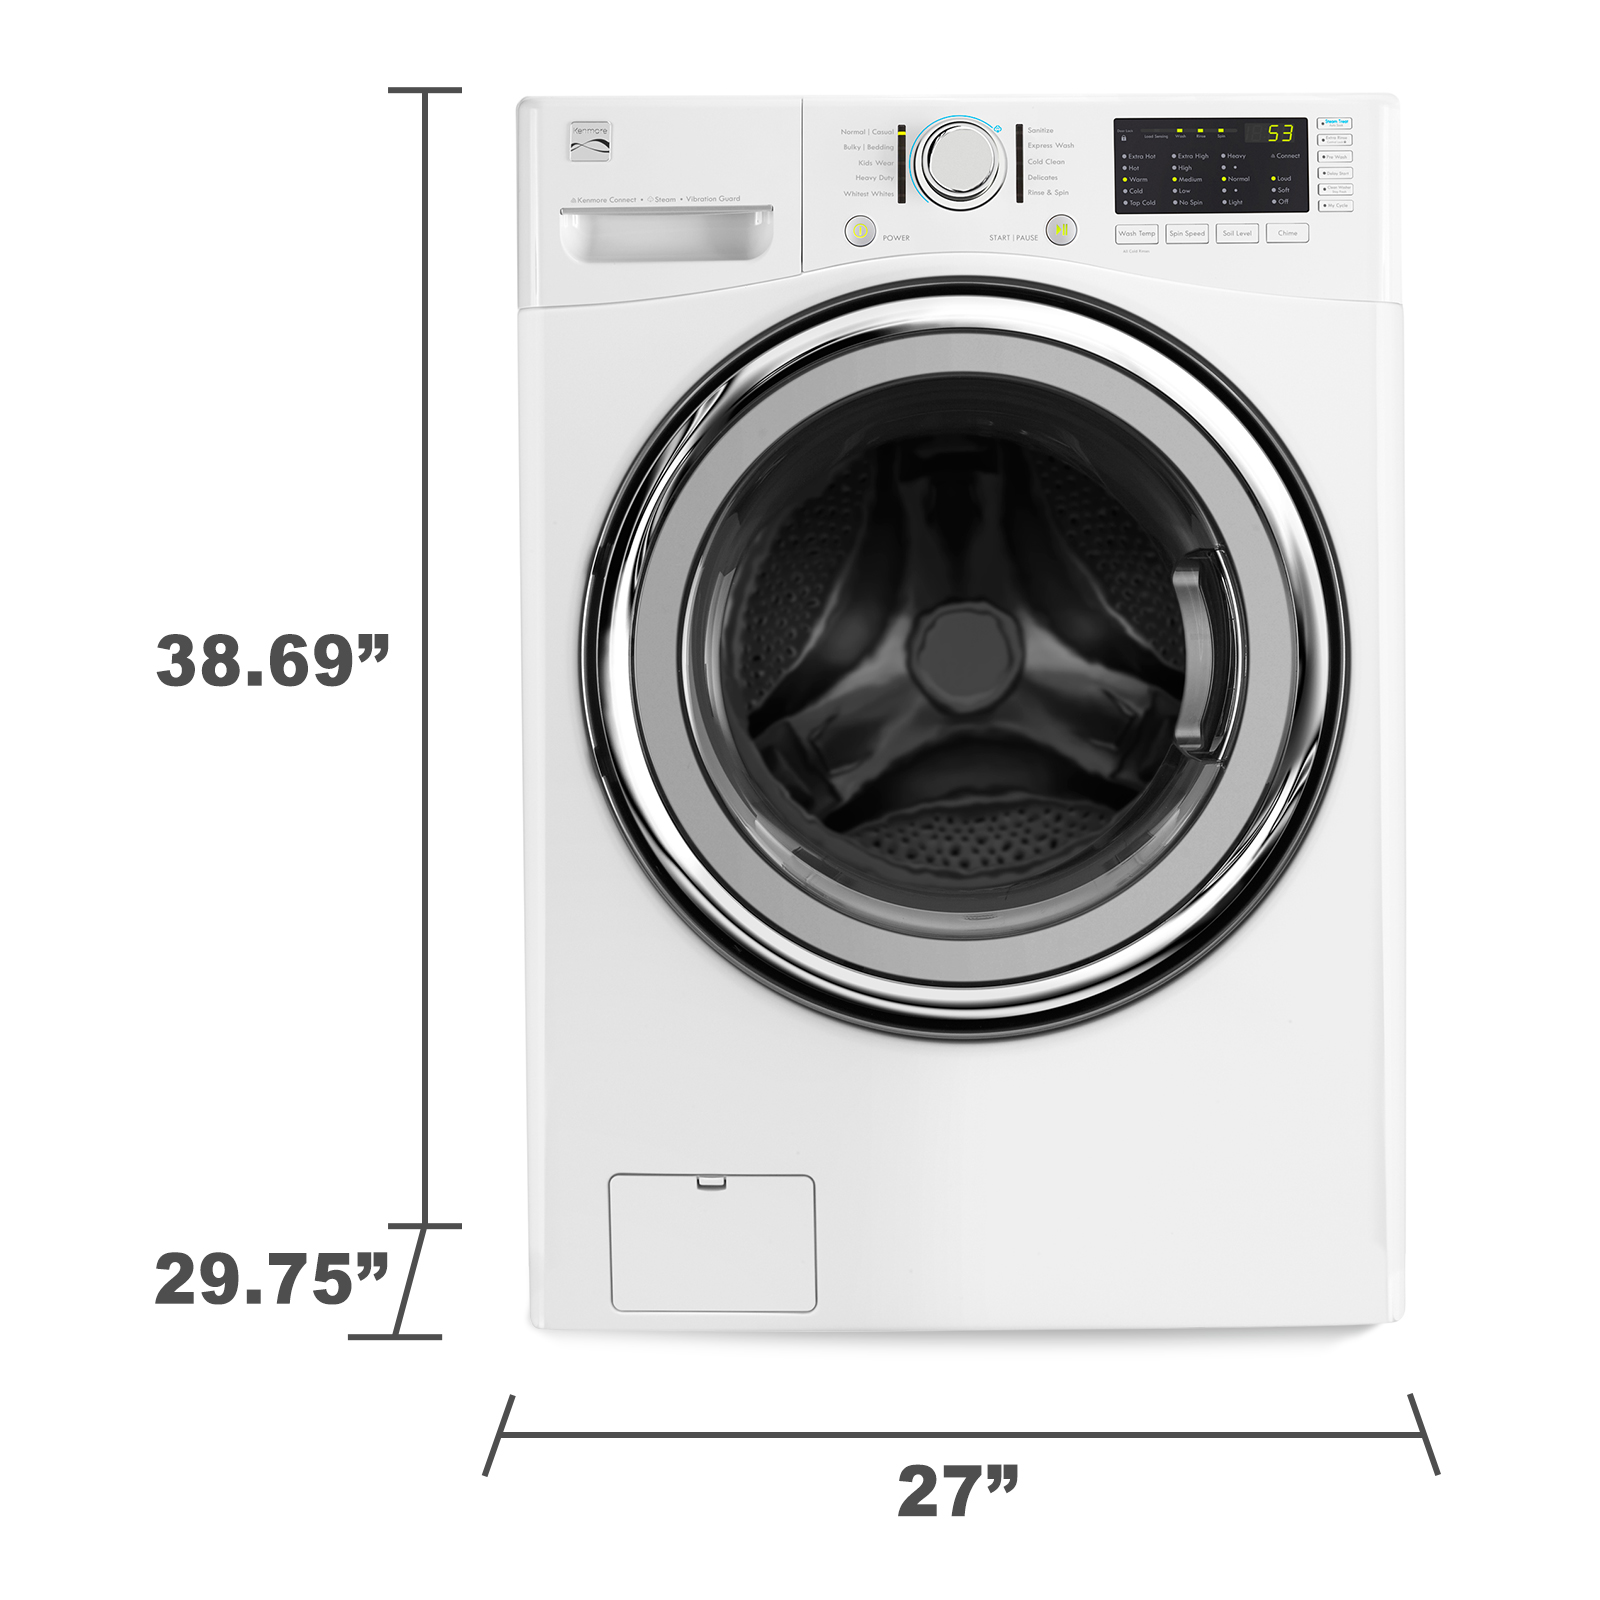 Kenmore 41382 4.3 cu. ft. Front-Load Washer w/Steam - White